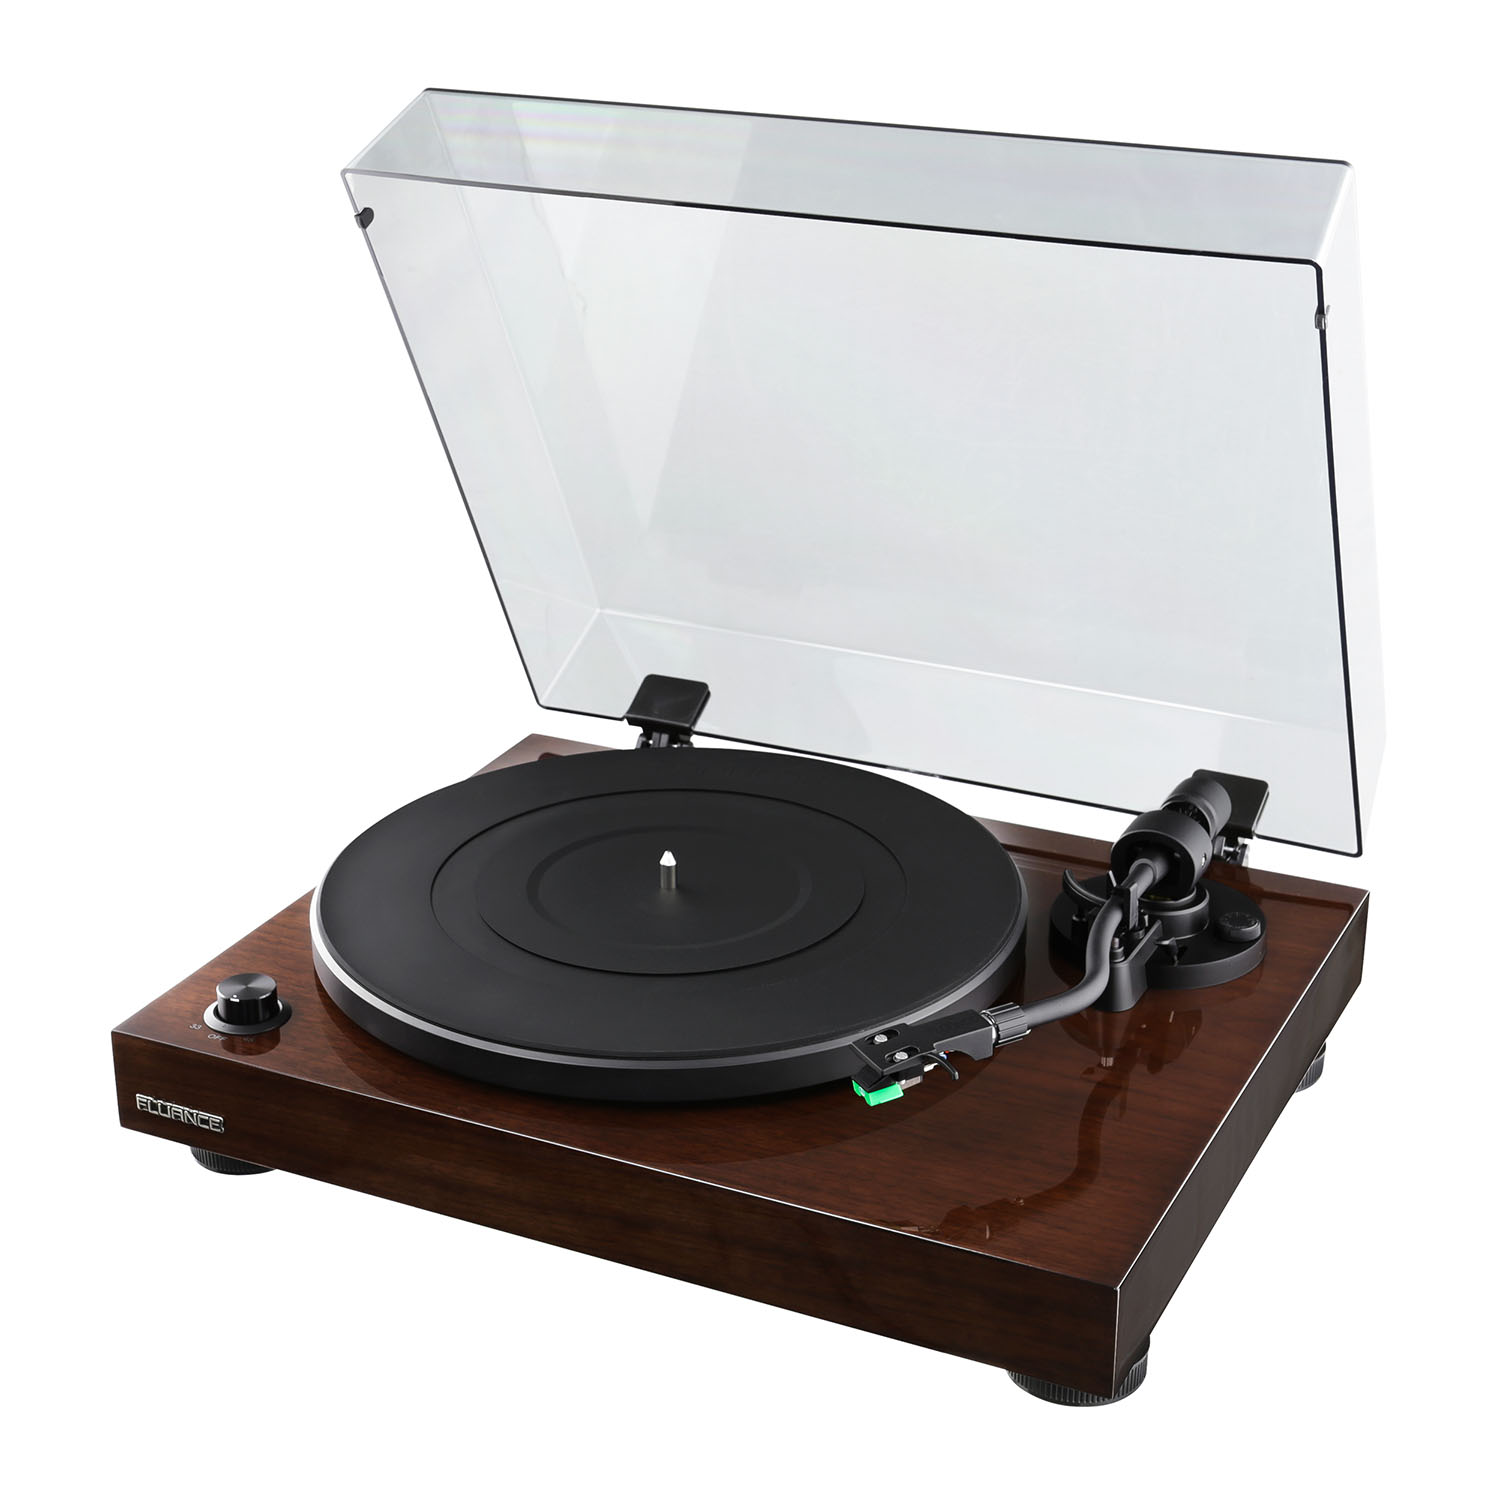 RT81 High Fidelity Vinyl Turntable Record Player